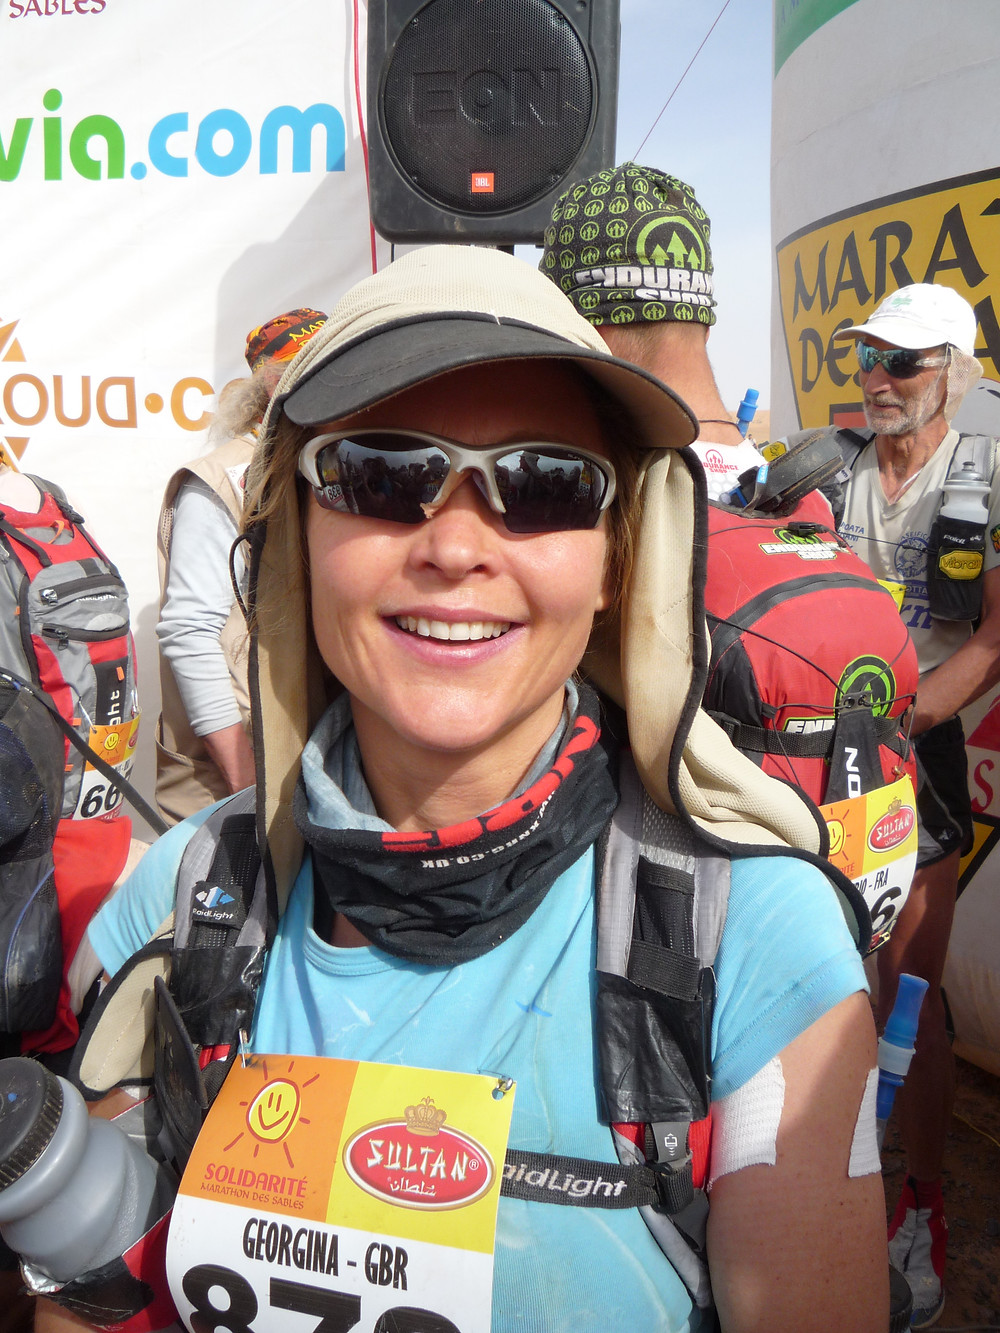 Start of MdS day 2 - still looking clean!